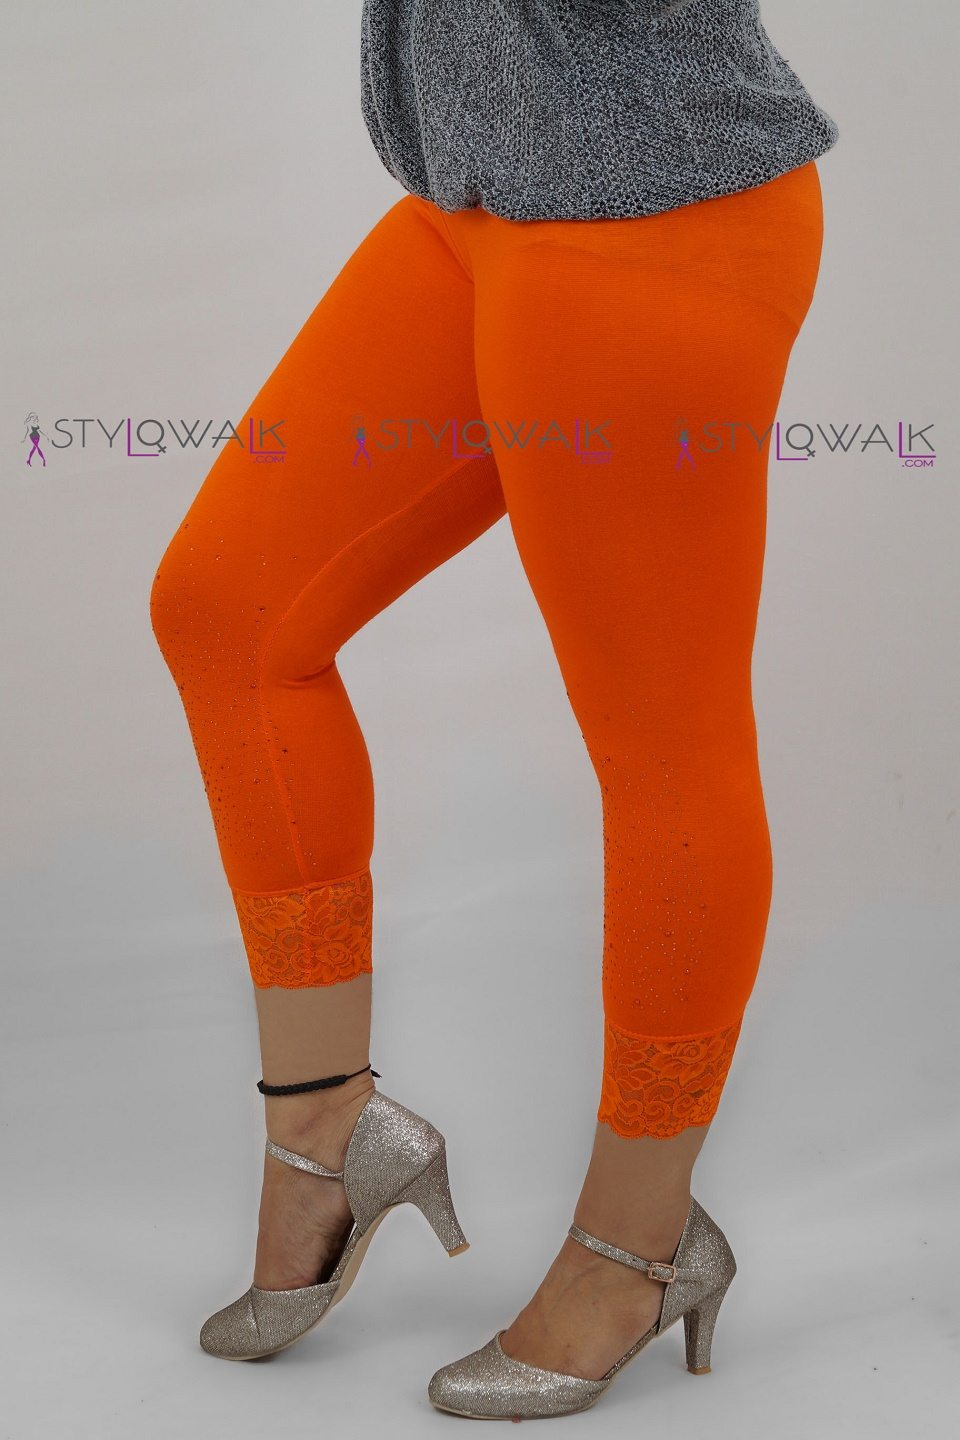 Wholesale Tights Manufacturers Women S Capri Leggings Wholesale Clothing Manufacturers In